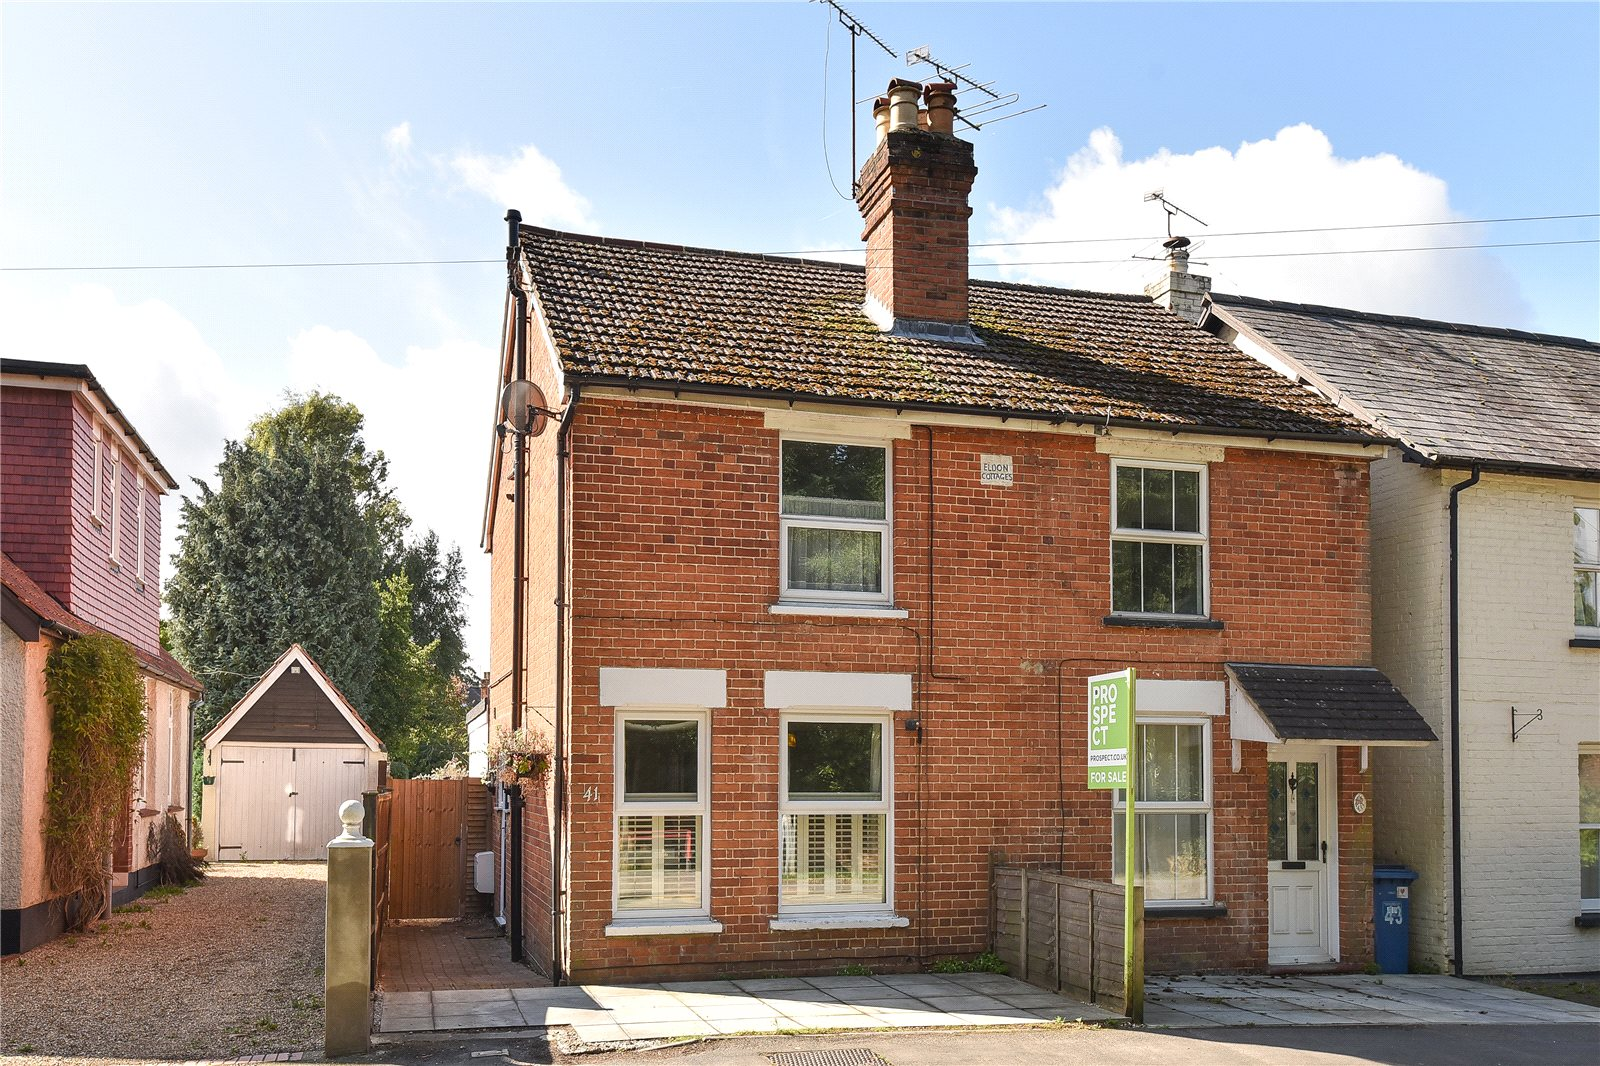 3 Bedrooms Semi Detached House for sale in Dukes Ride, Crowthorne, Berkshire, RG45